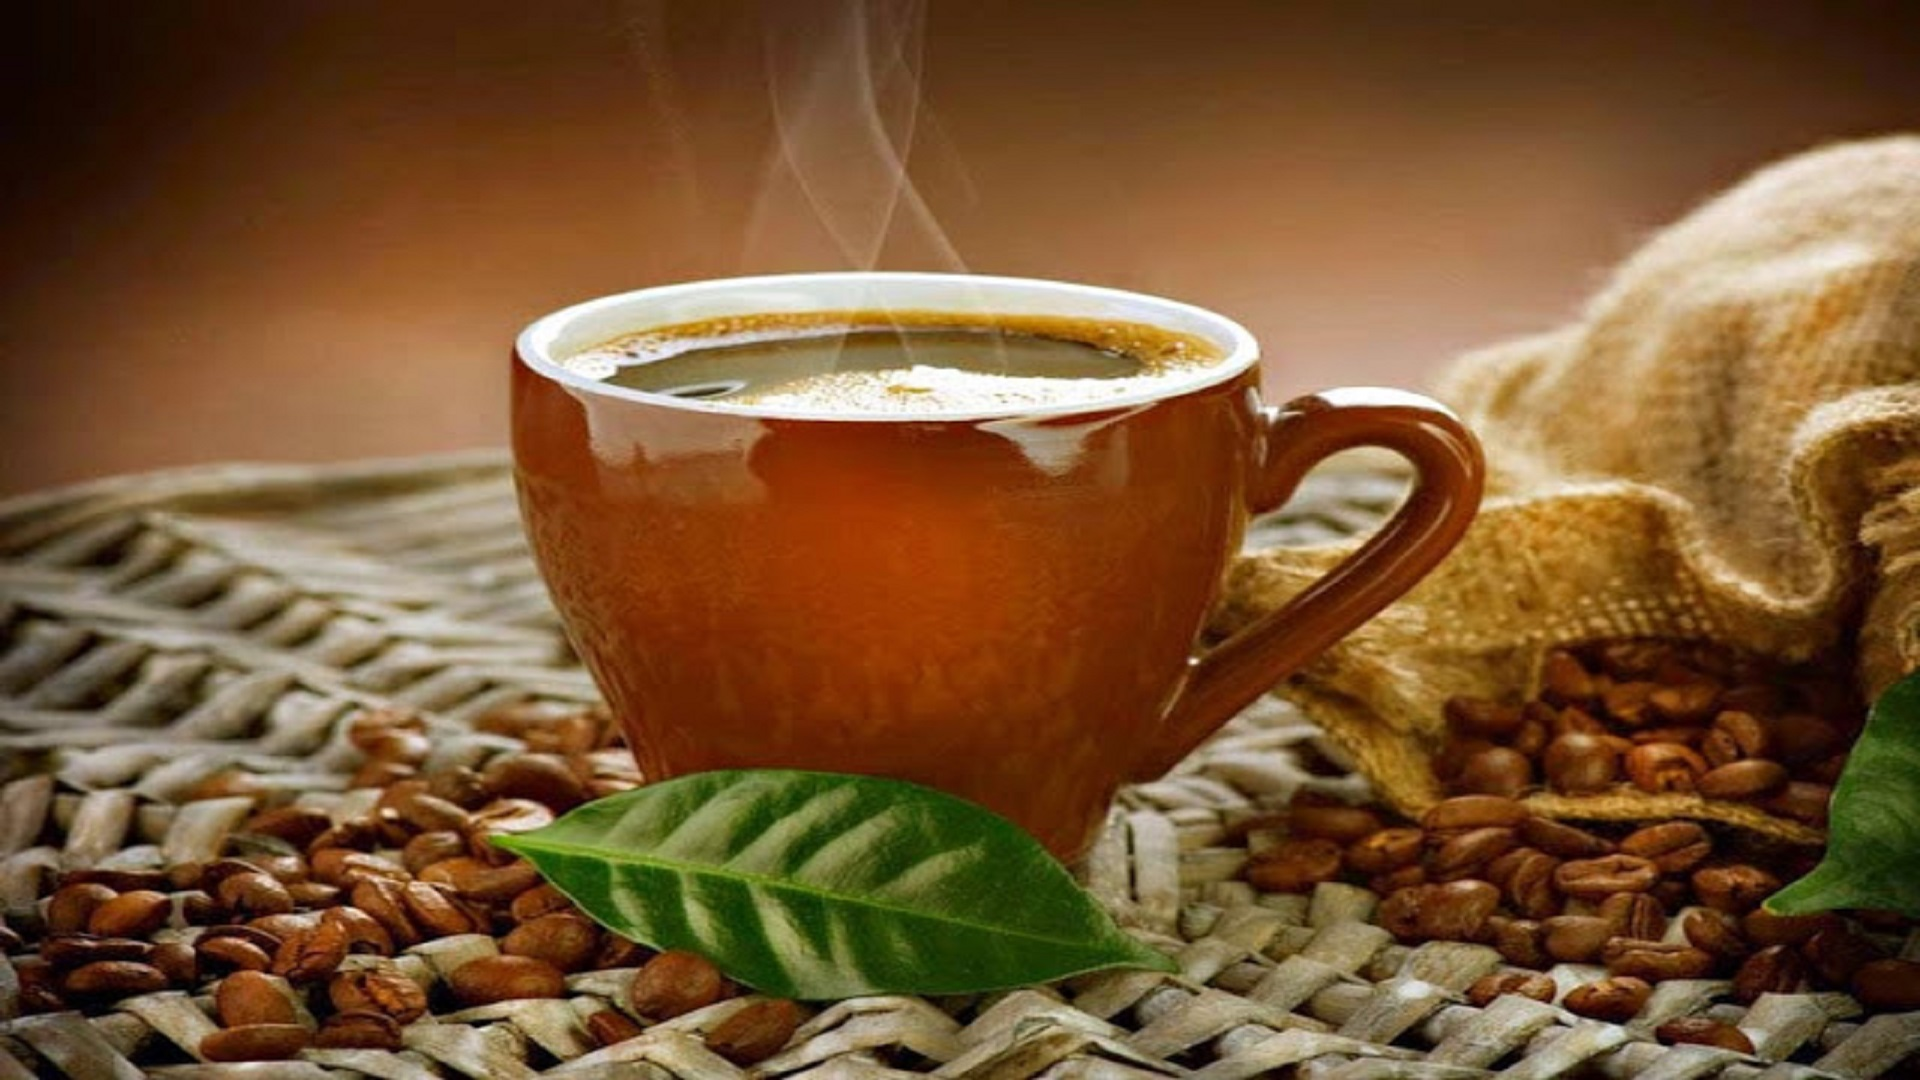 Free 3d Wallpaper Download For Mobile Morning With Cup Of Green Coffee Free Hd Wallpapers Hd